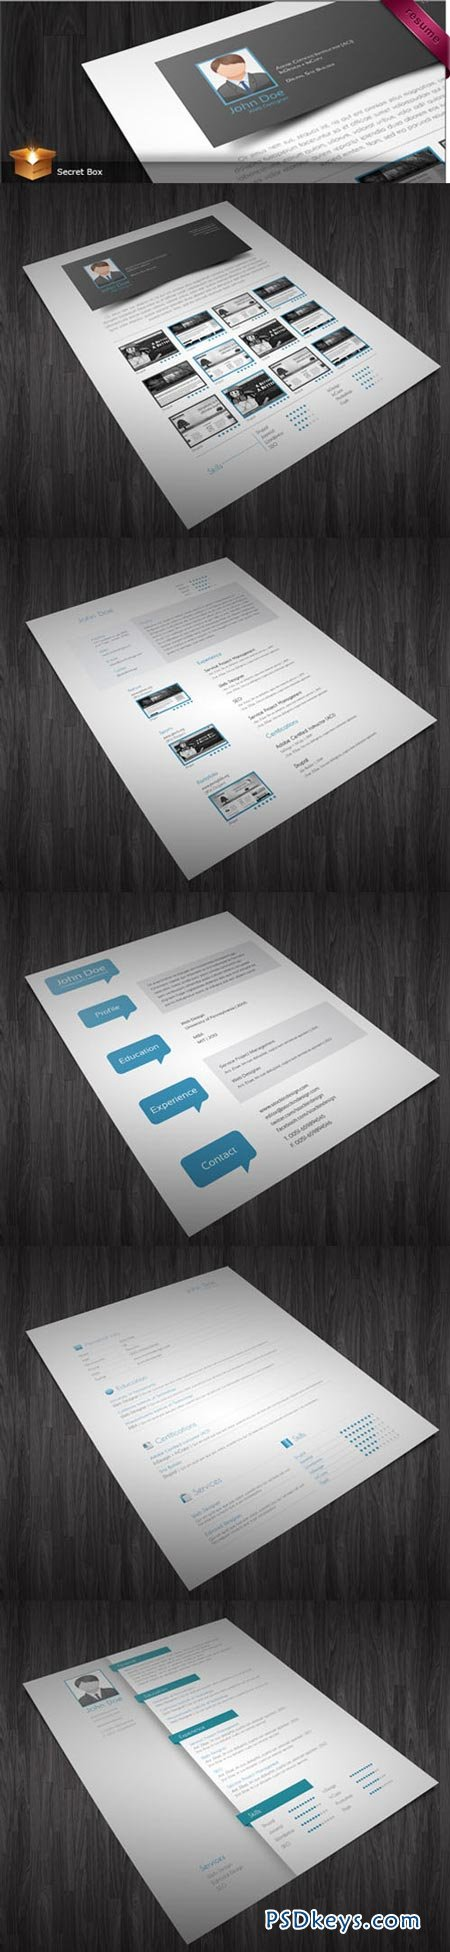 5 CV Resumes InDesign Templates » Free Download Photoshop Vector ...